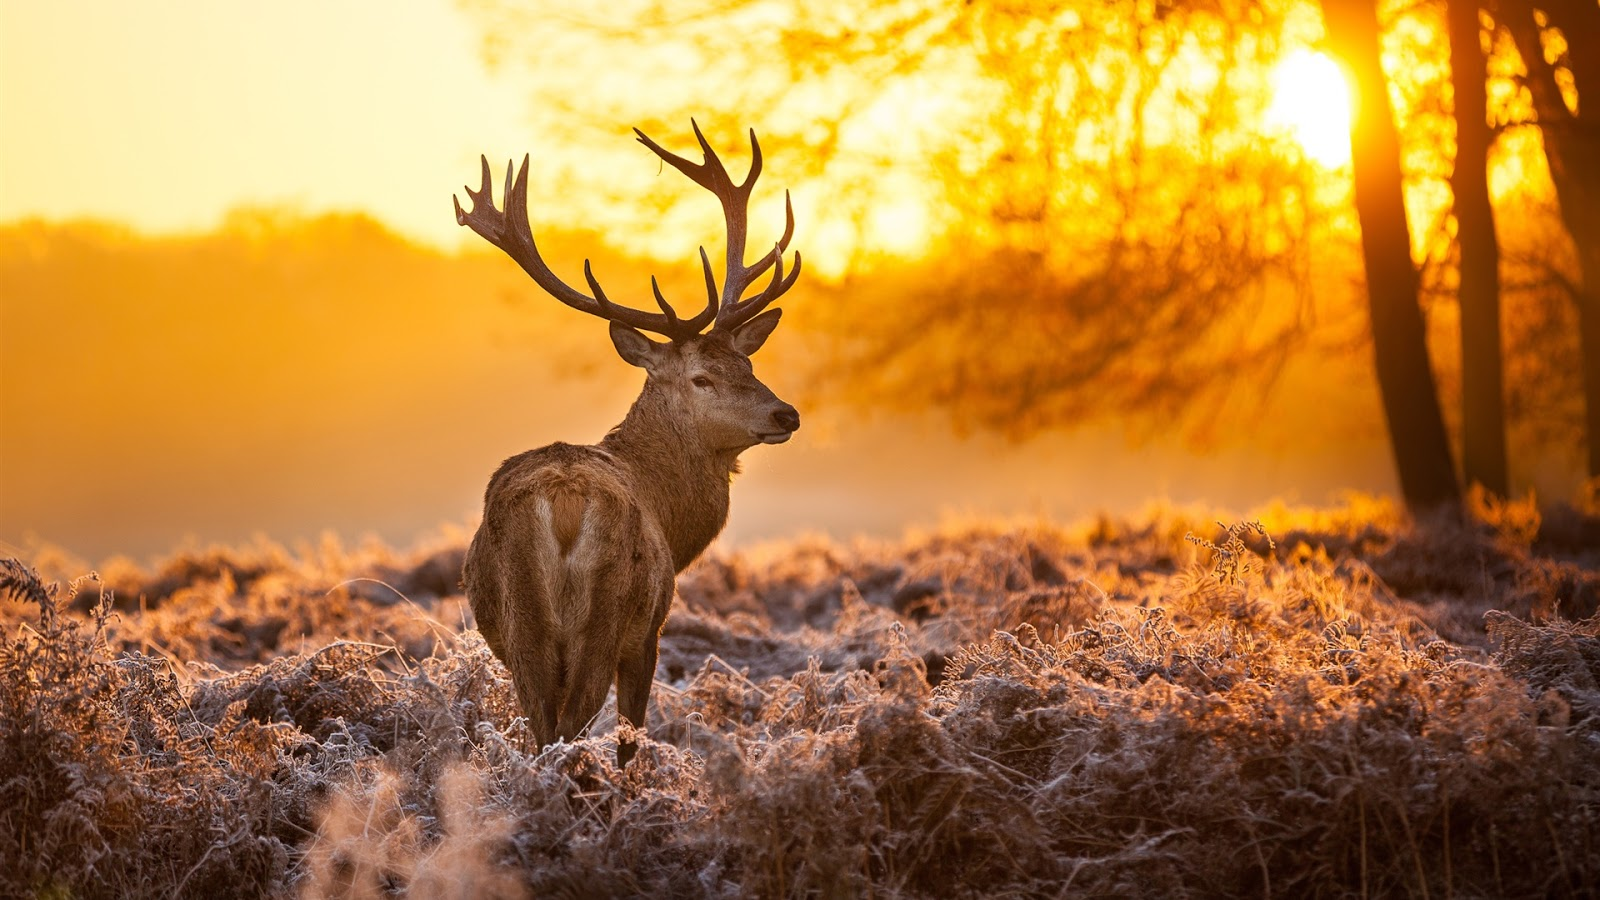 Deer Under The Sunset Full Desktop Wallpapers